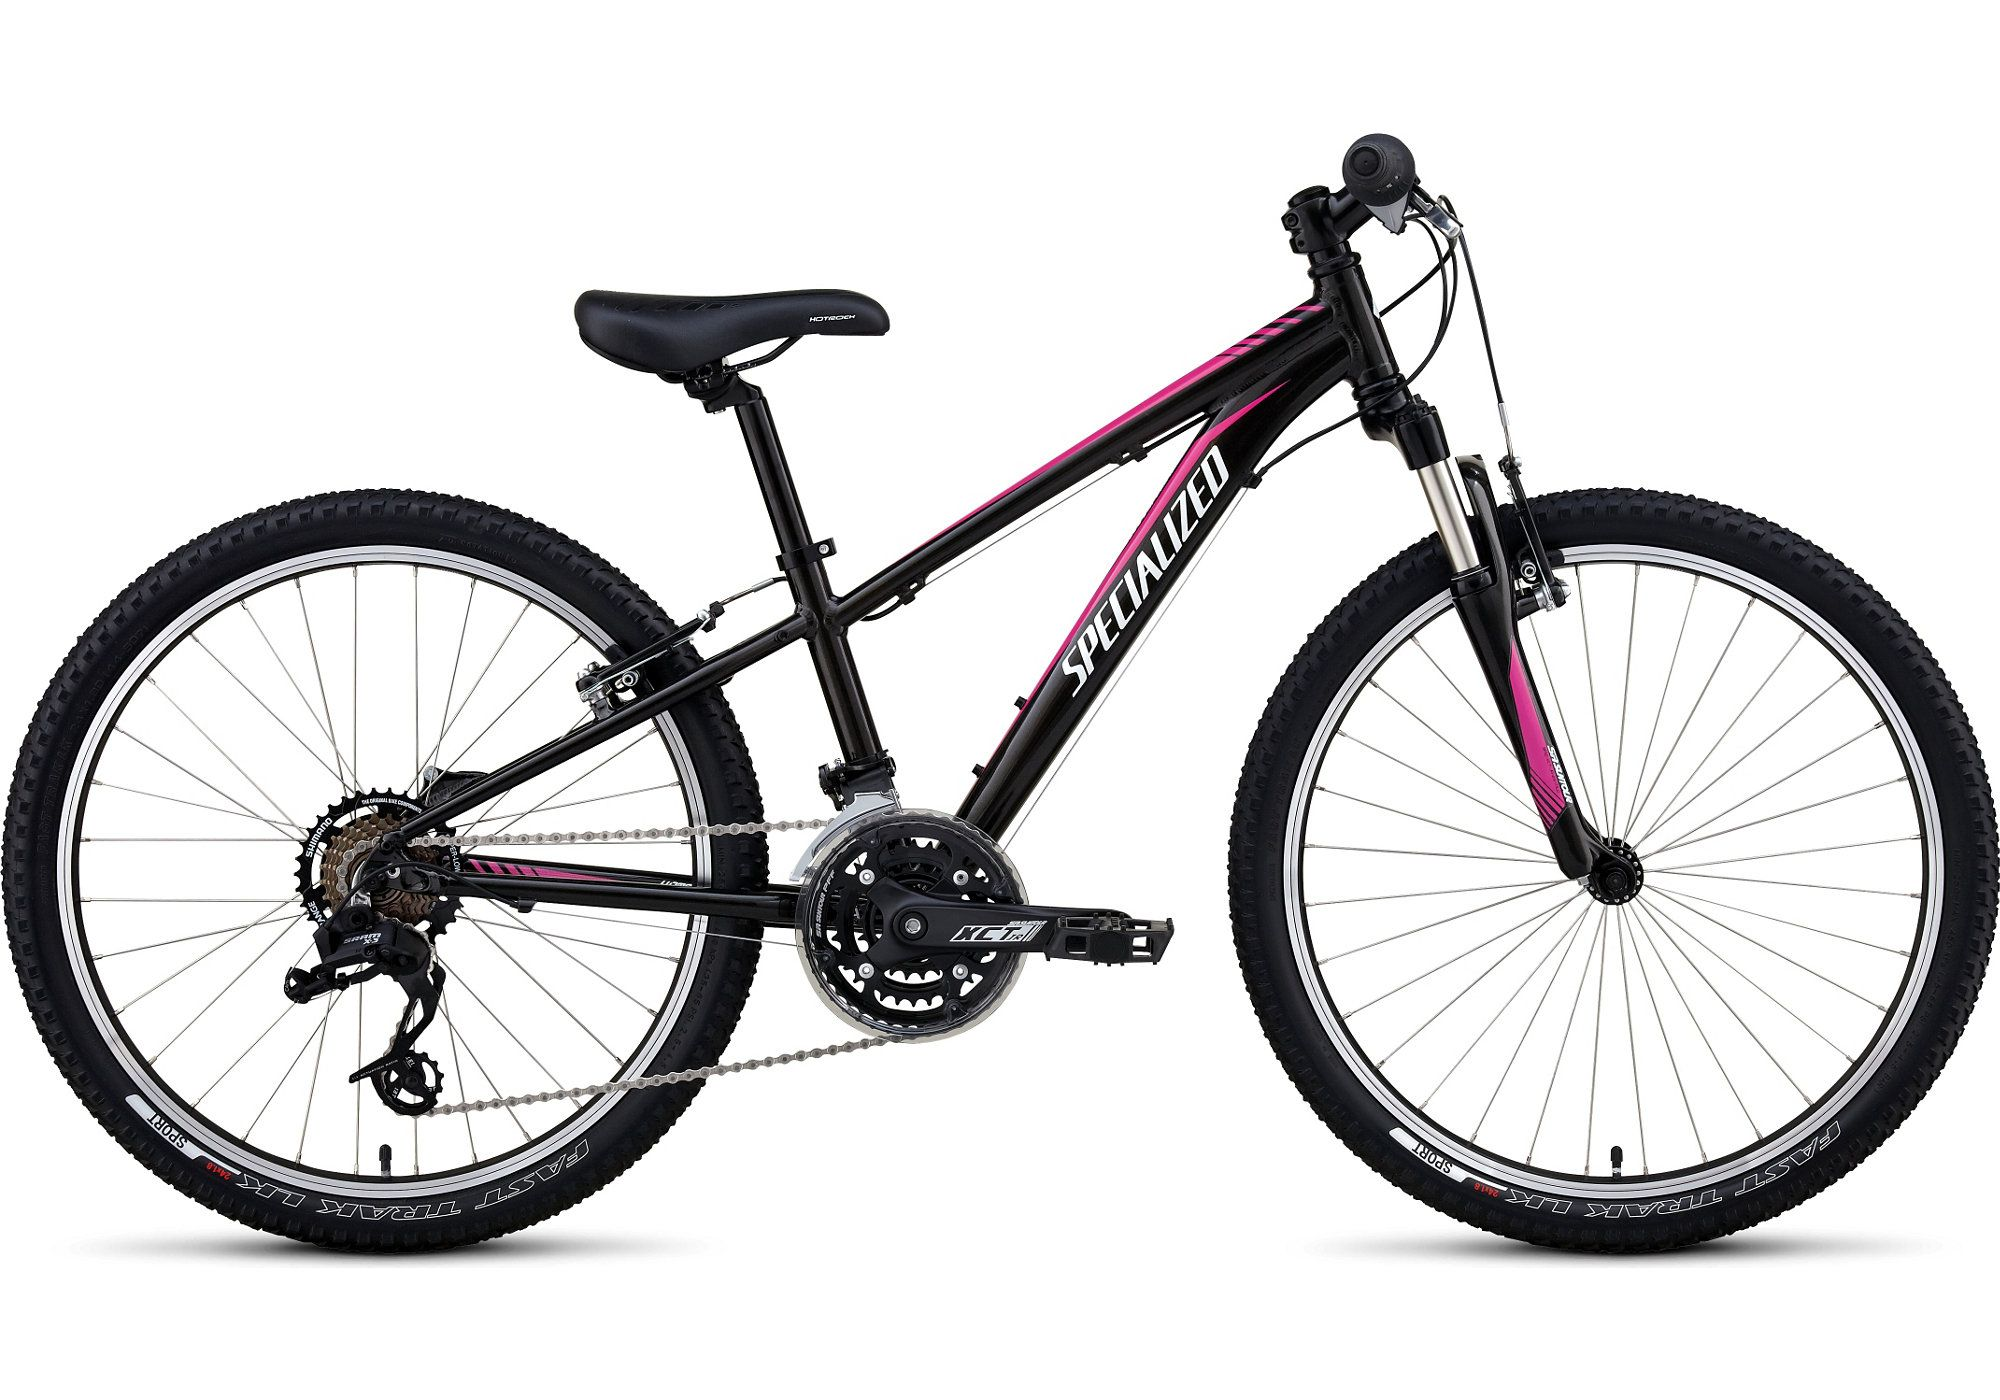 Велосипед Specialized Hotrock 24 XC girl 2016 велосипед specialized ruby sport 2016